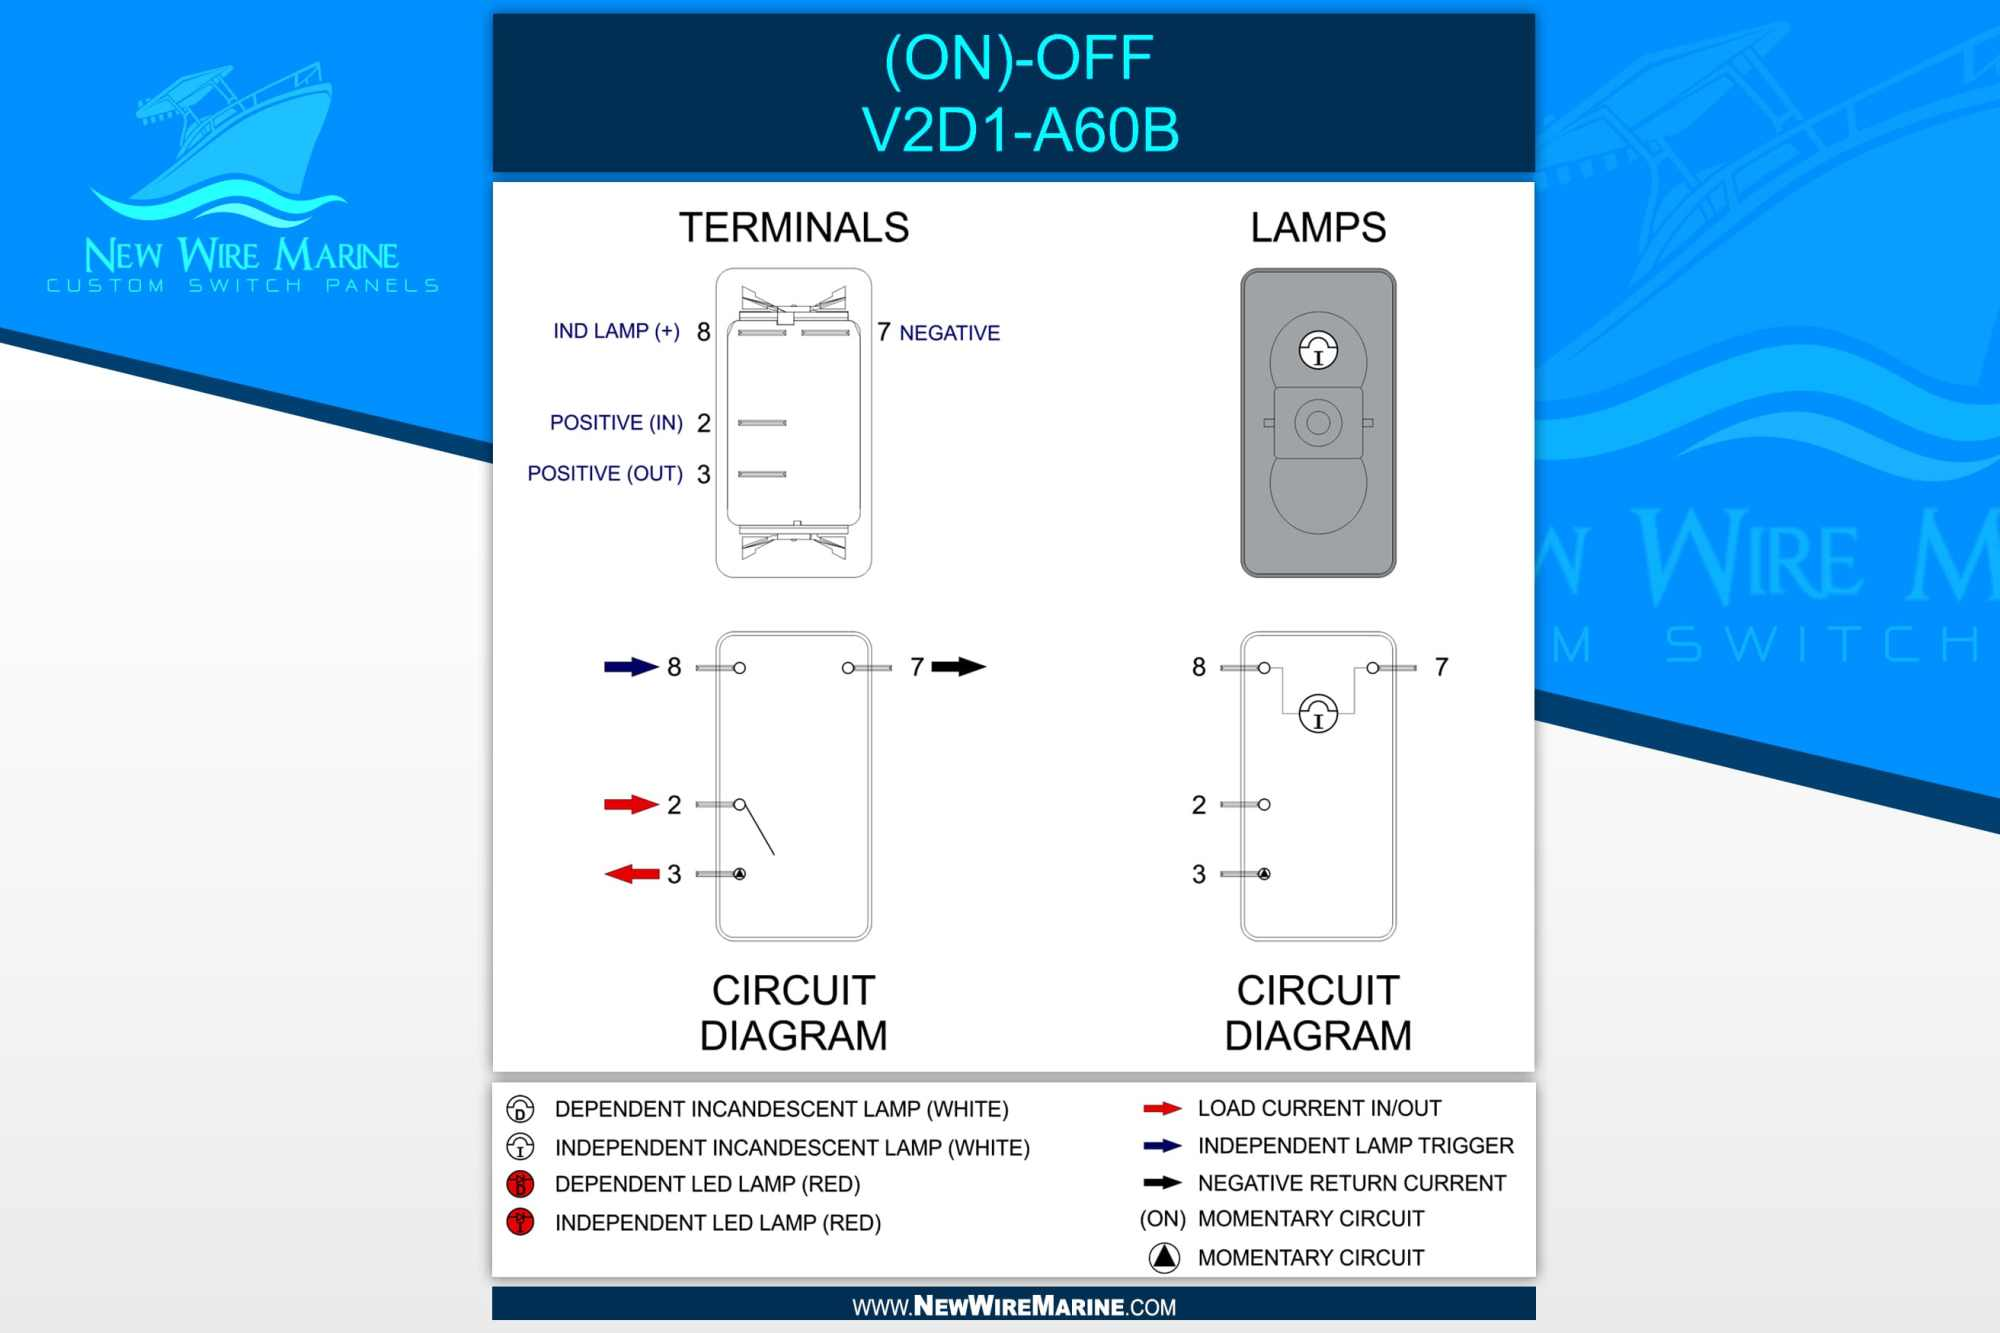 hight resolution of contura lower independent wiring diagram vjd2 uxxb momentary rocker switch wiring diagram marine contura illuminated switch